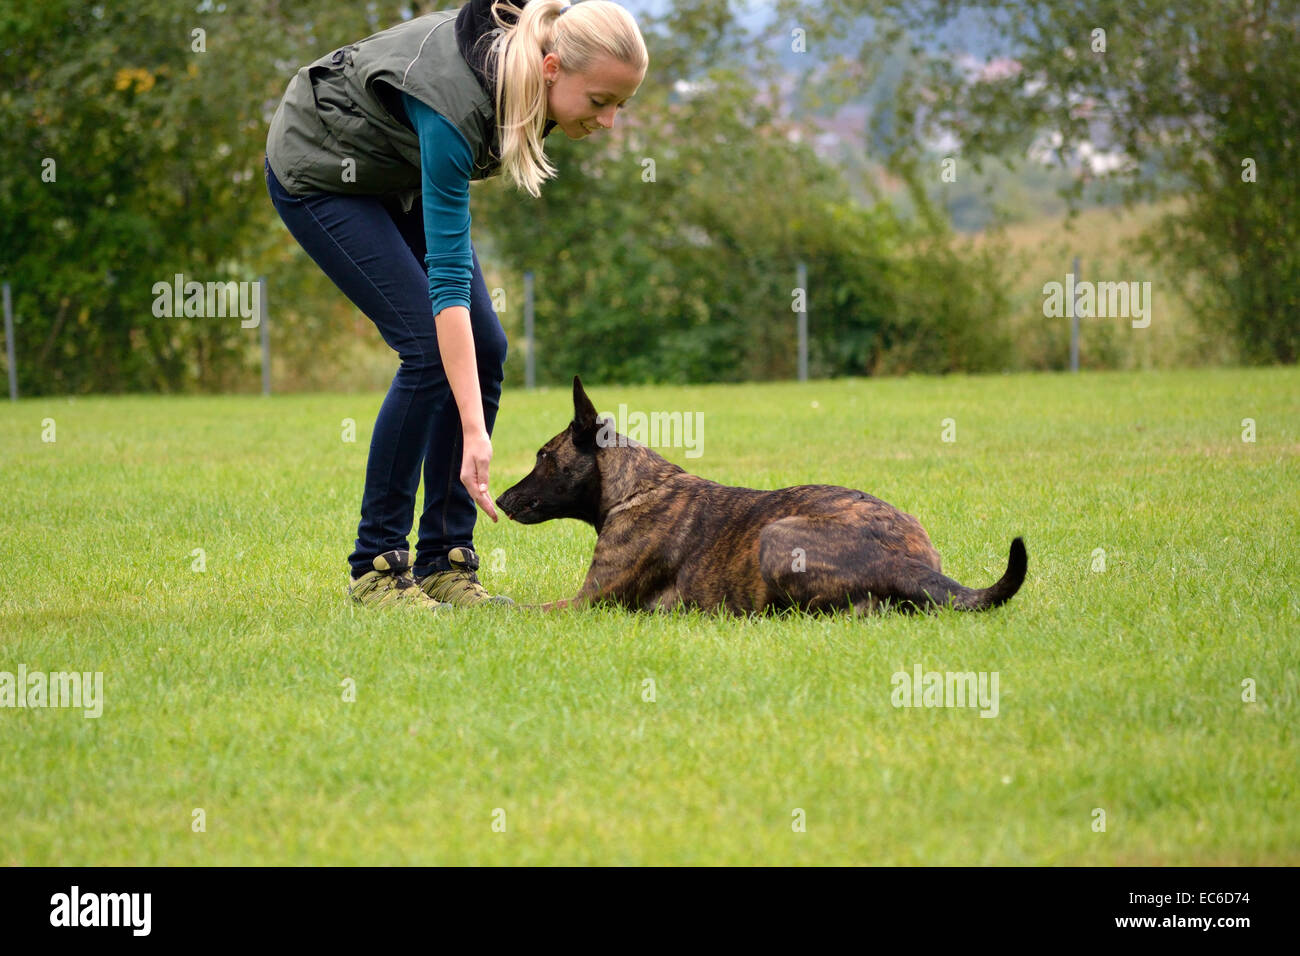 Dog is rewarded by dog trainer - Stock Image